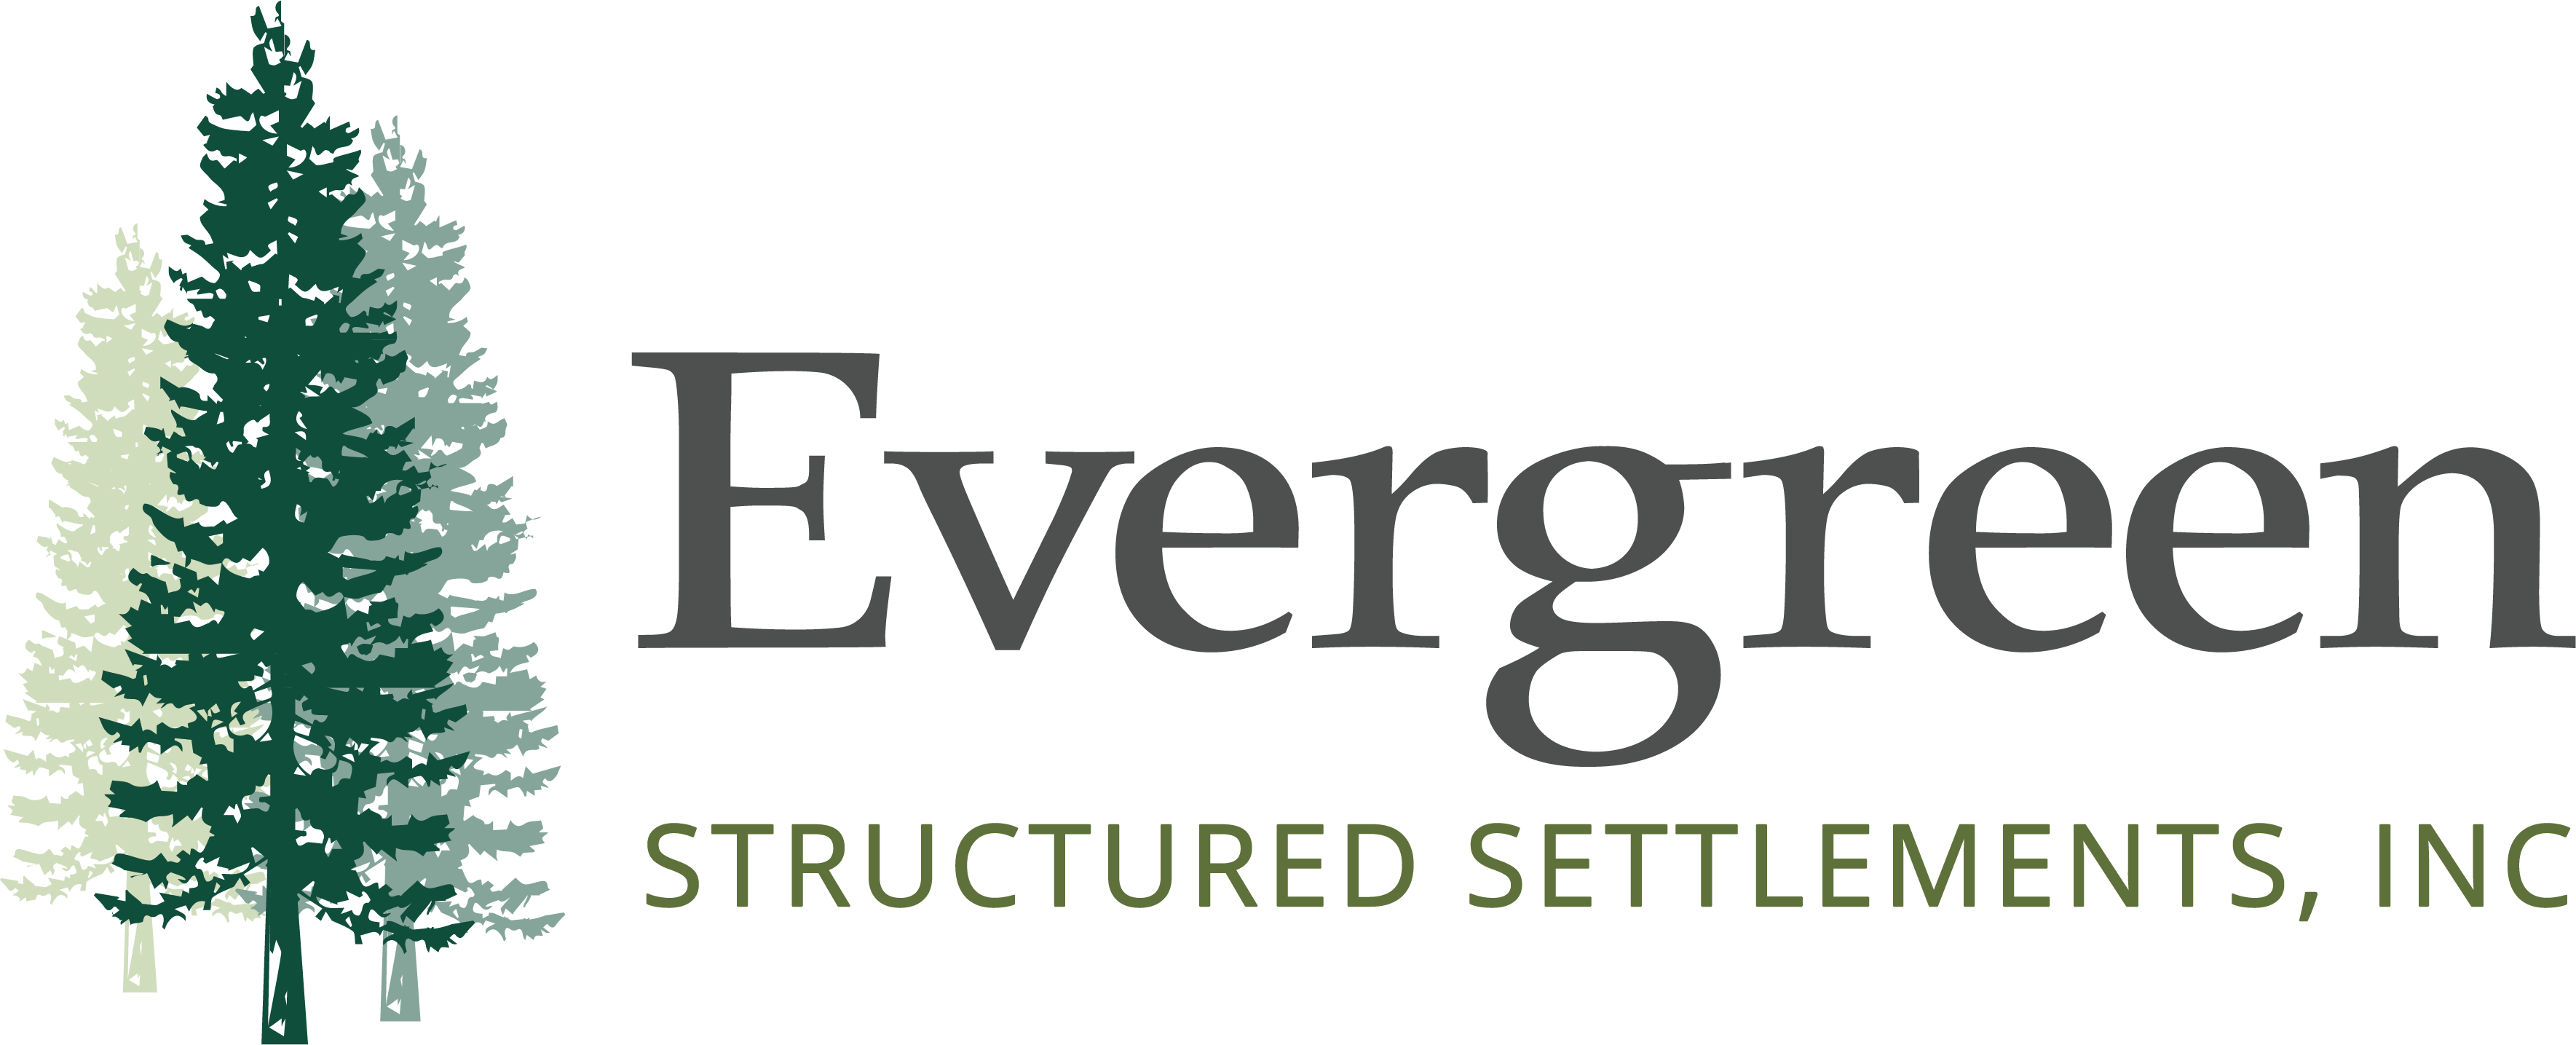 Evergreen Structured Settlements Inc.